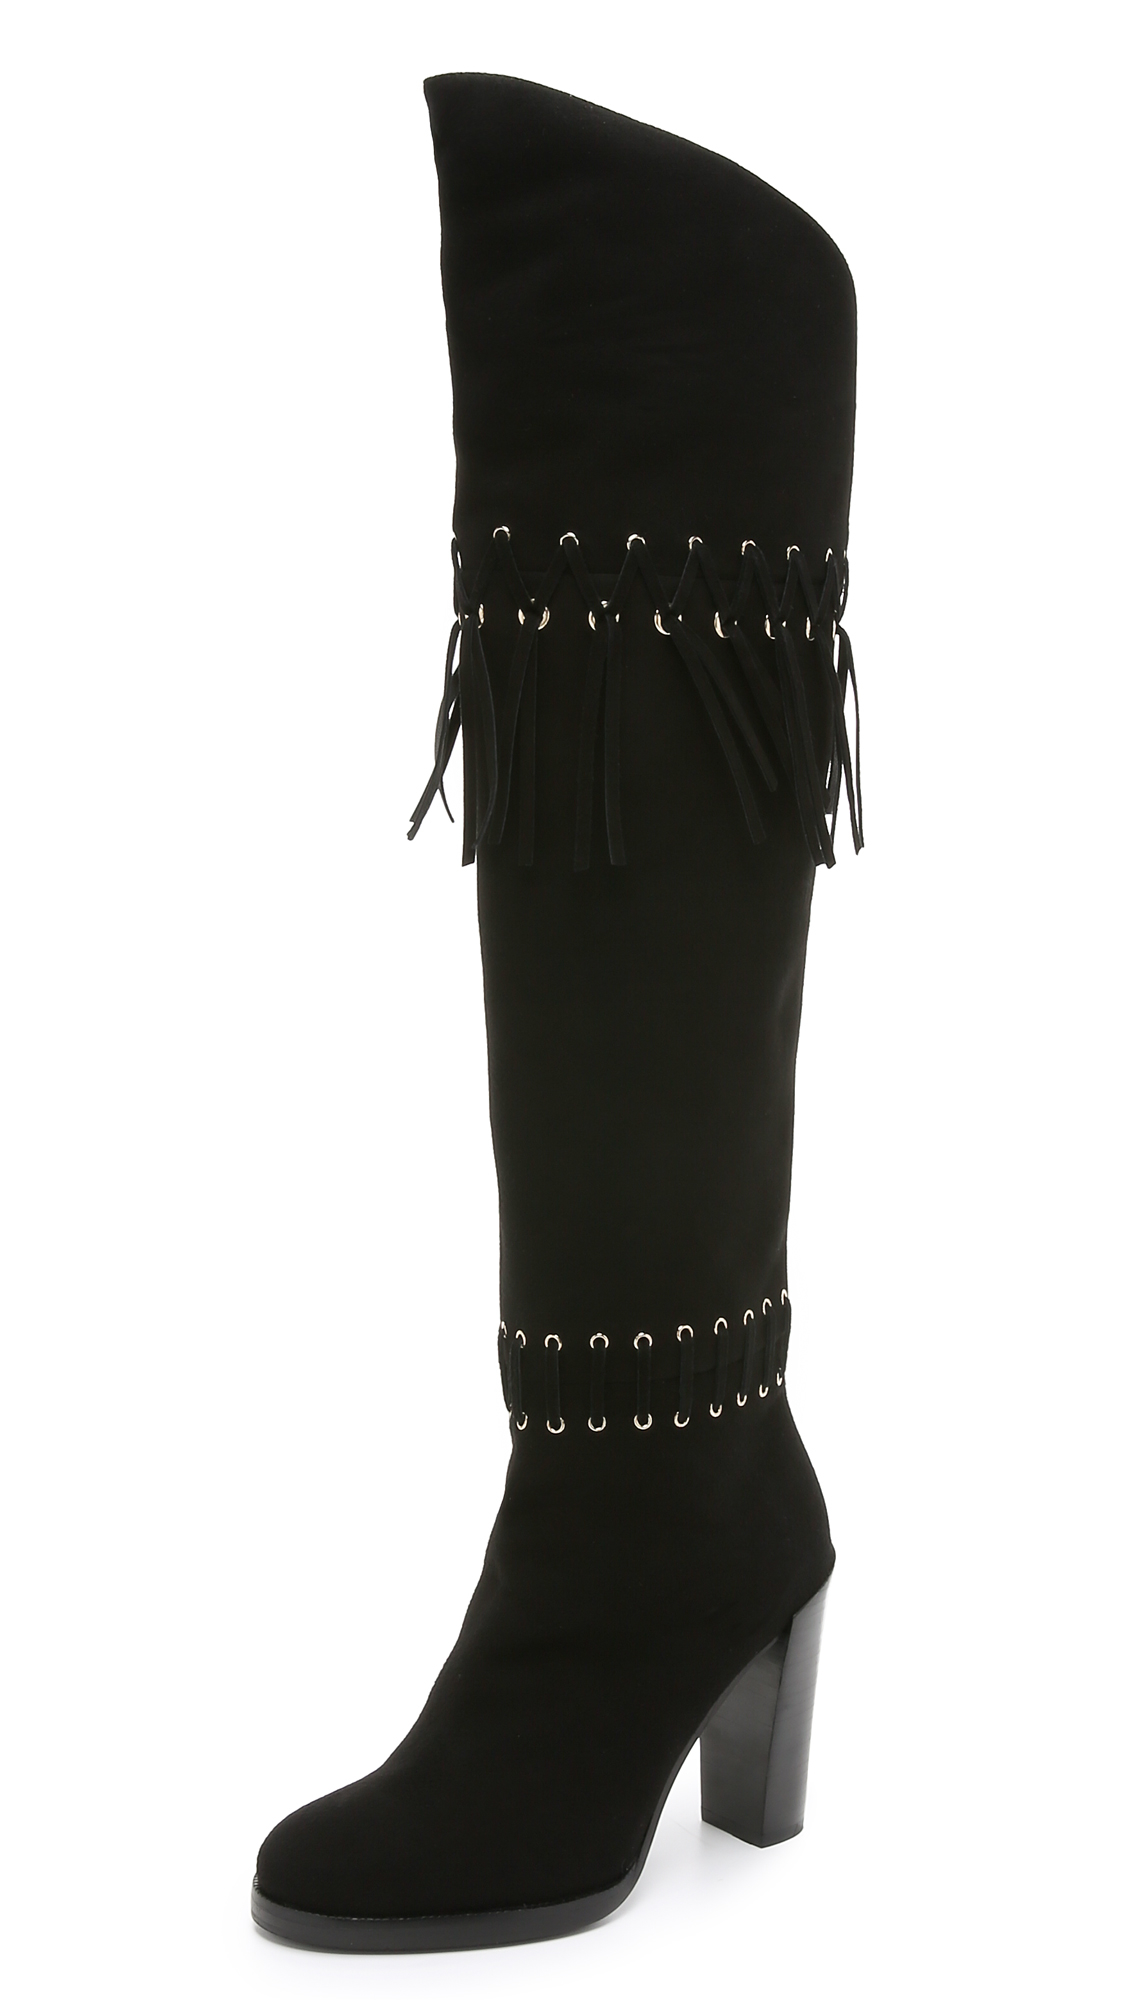 cce6d6f30d7 Lyst - Rebecca Minkoff Bardot Over The Knee Boots in Black